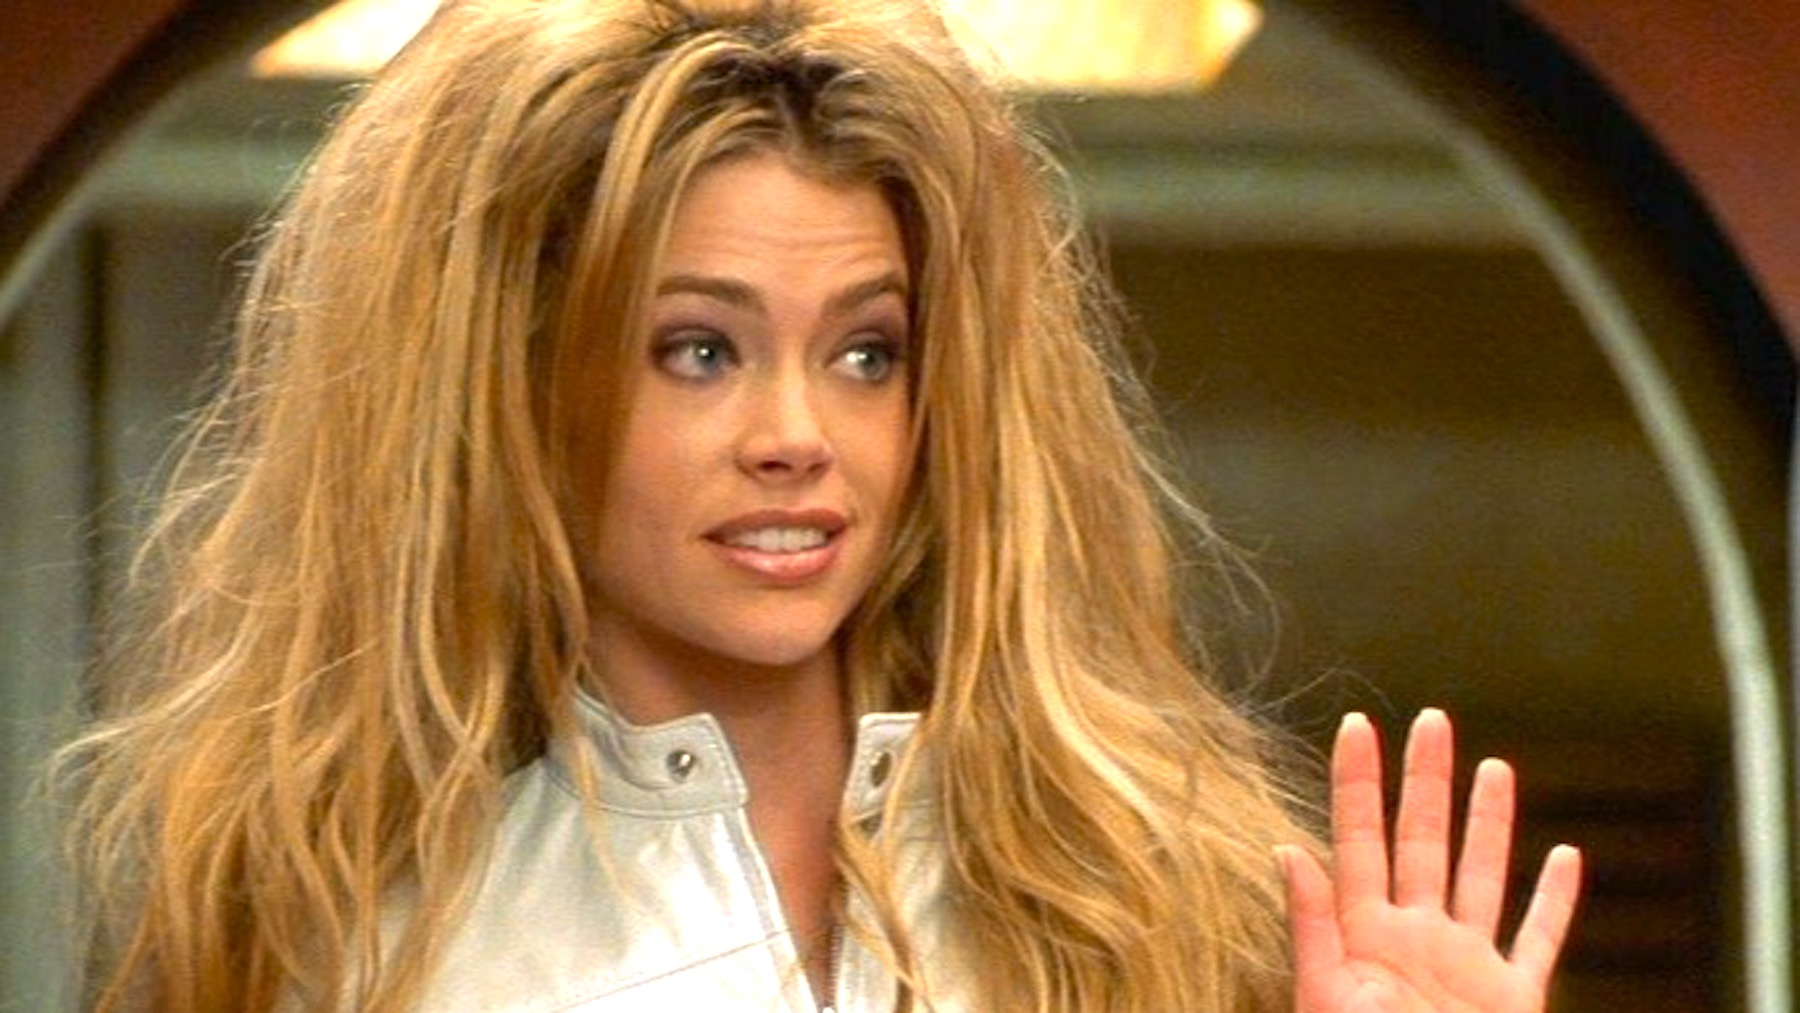 juju, denise richards, celebs, funny face, funny, hair, weird, blond, blonde, idk, confused, shocked, gross, no, bad, good